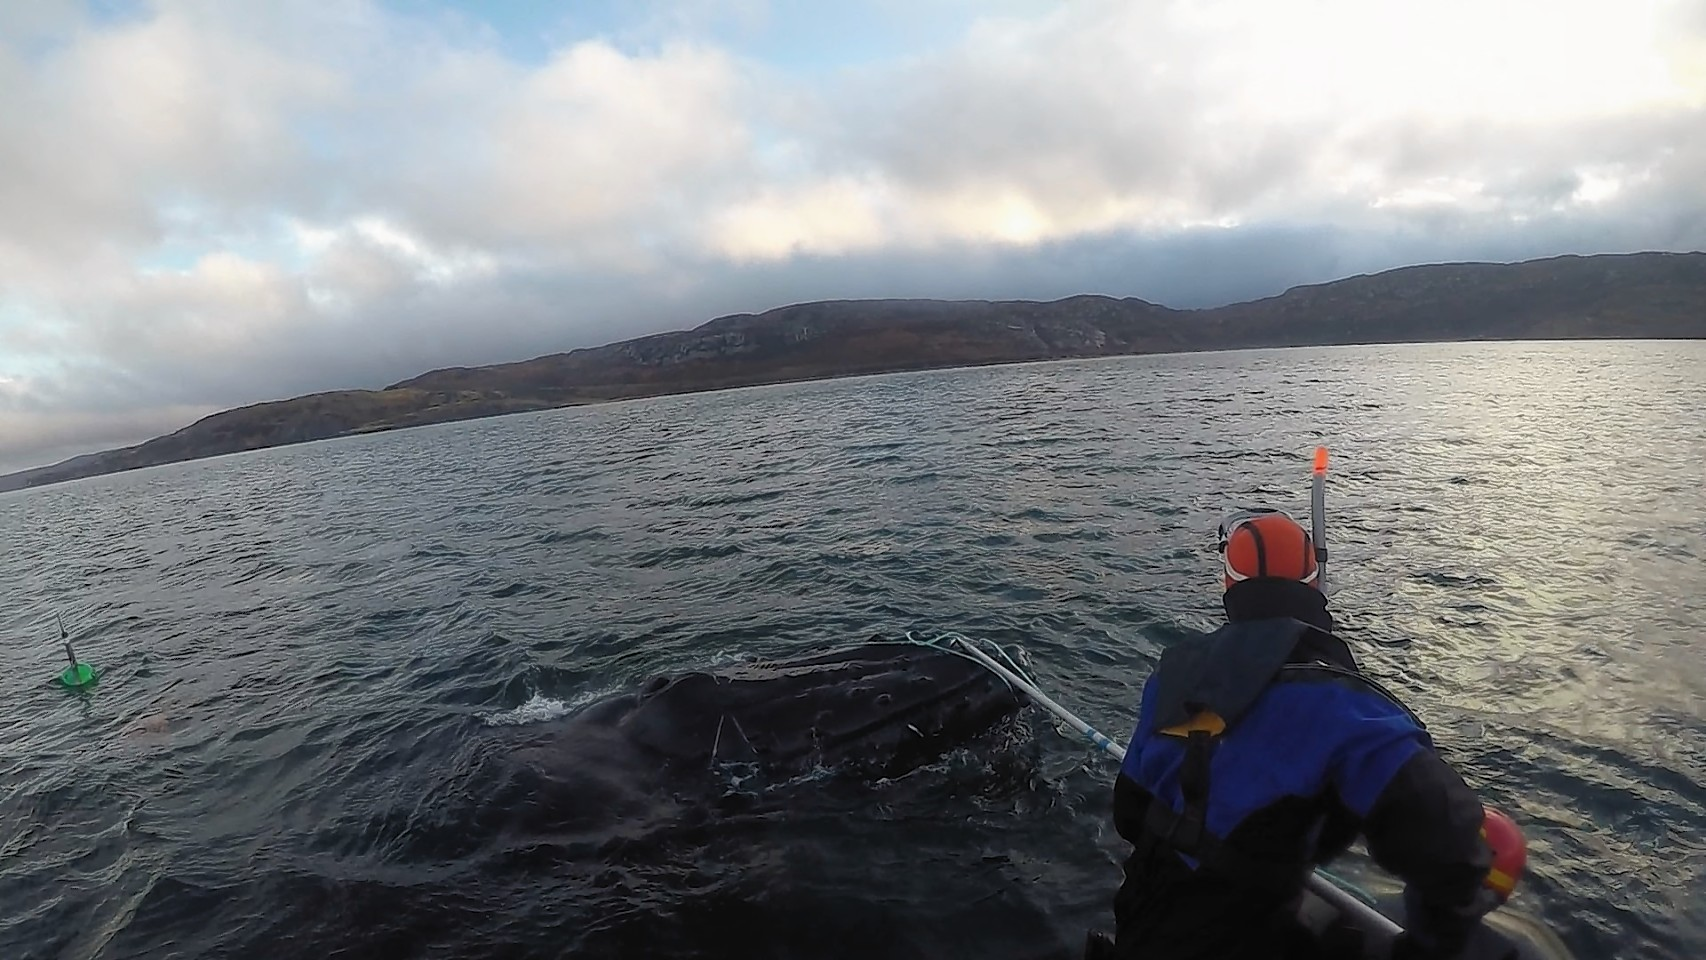 The rescue boat crew reach the whale. Picture by Noel Hawkins